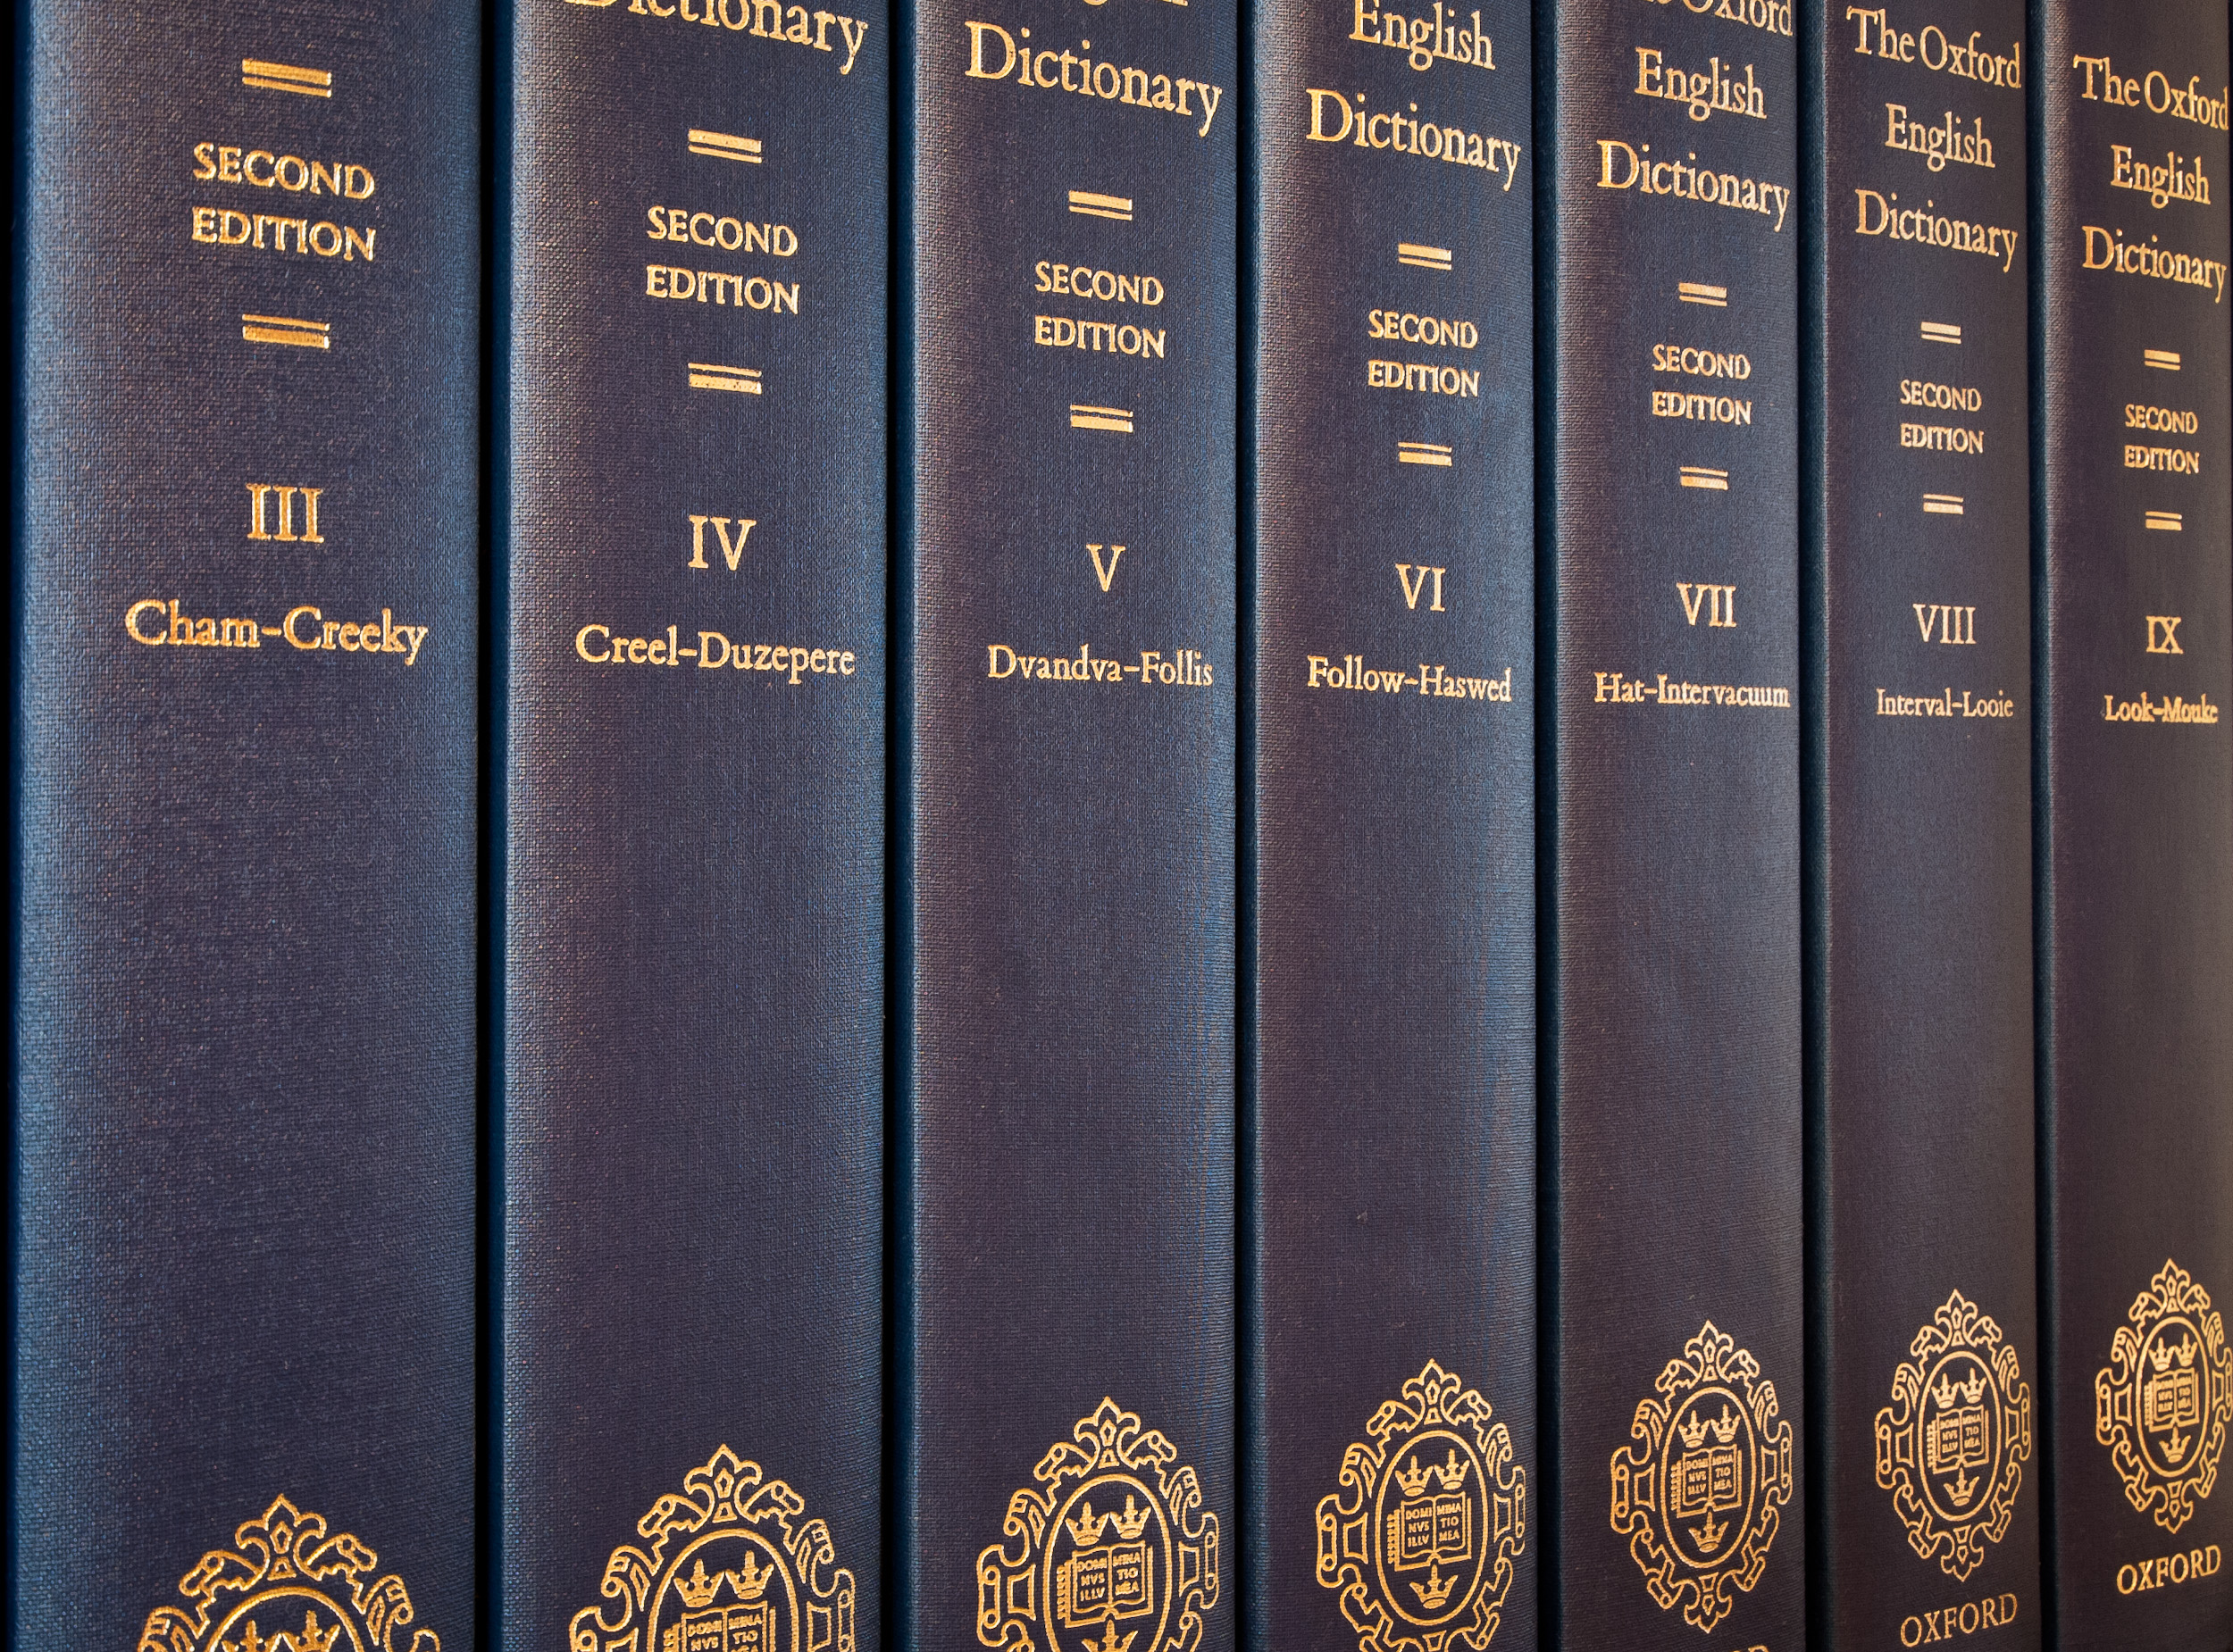 024 Oed2 Volumes Manual For Writers Of Researchs Theses And Dissertations Magnificent Research Papers A 8th Ed Pdf Full